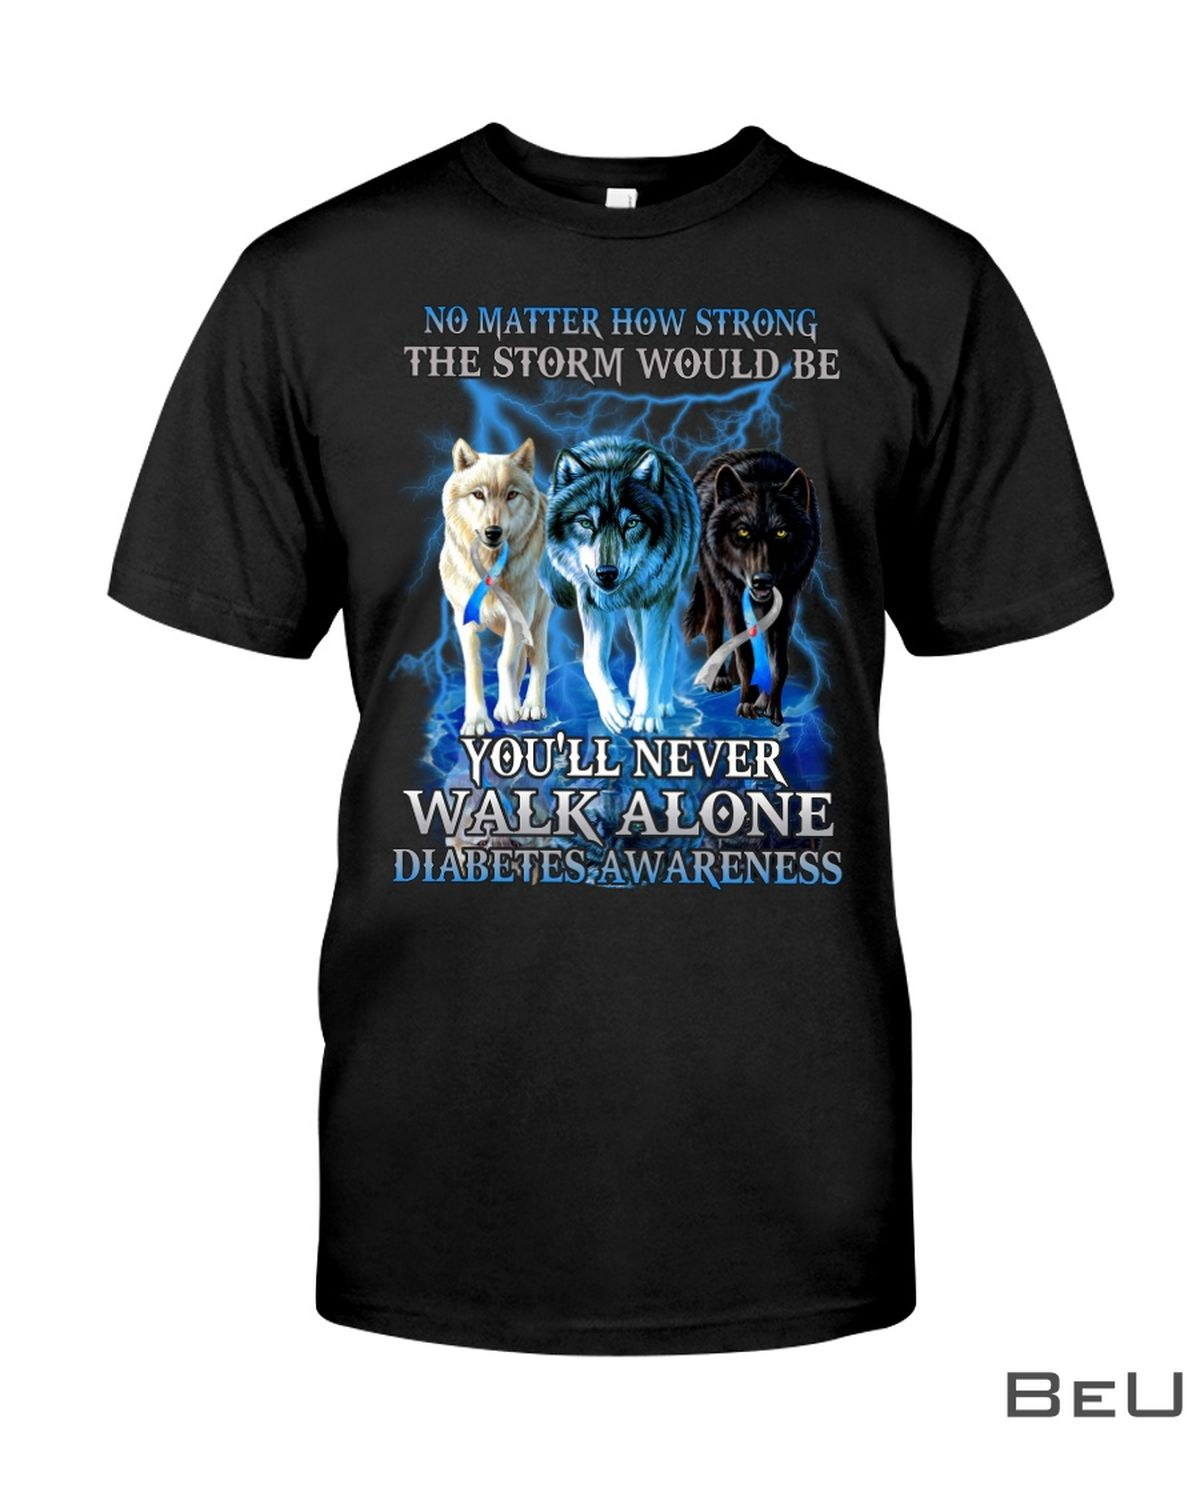 No-Matter-How-Strong-The-Storm-Would-Be-Youll-Never-Walk-Alone-Diabetes-Awareness-Shirt